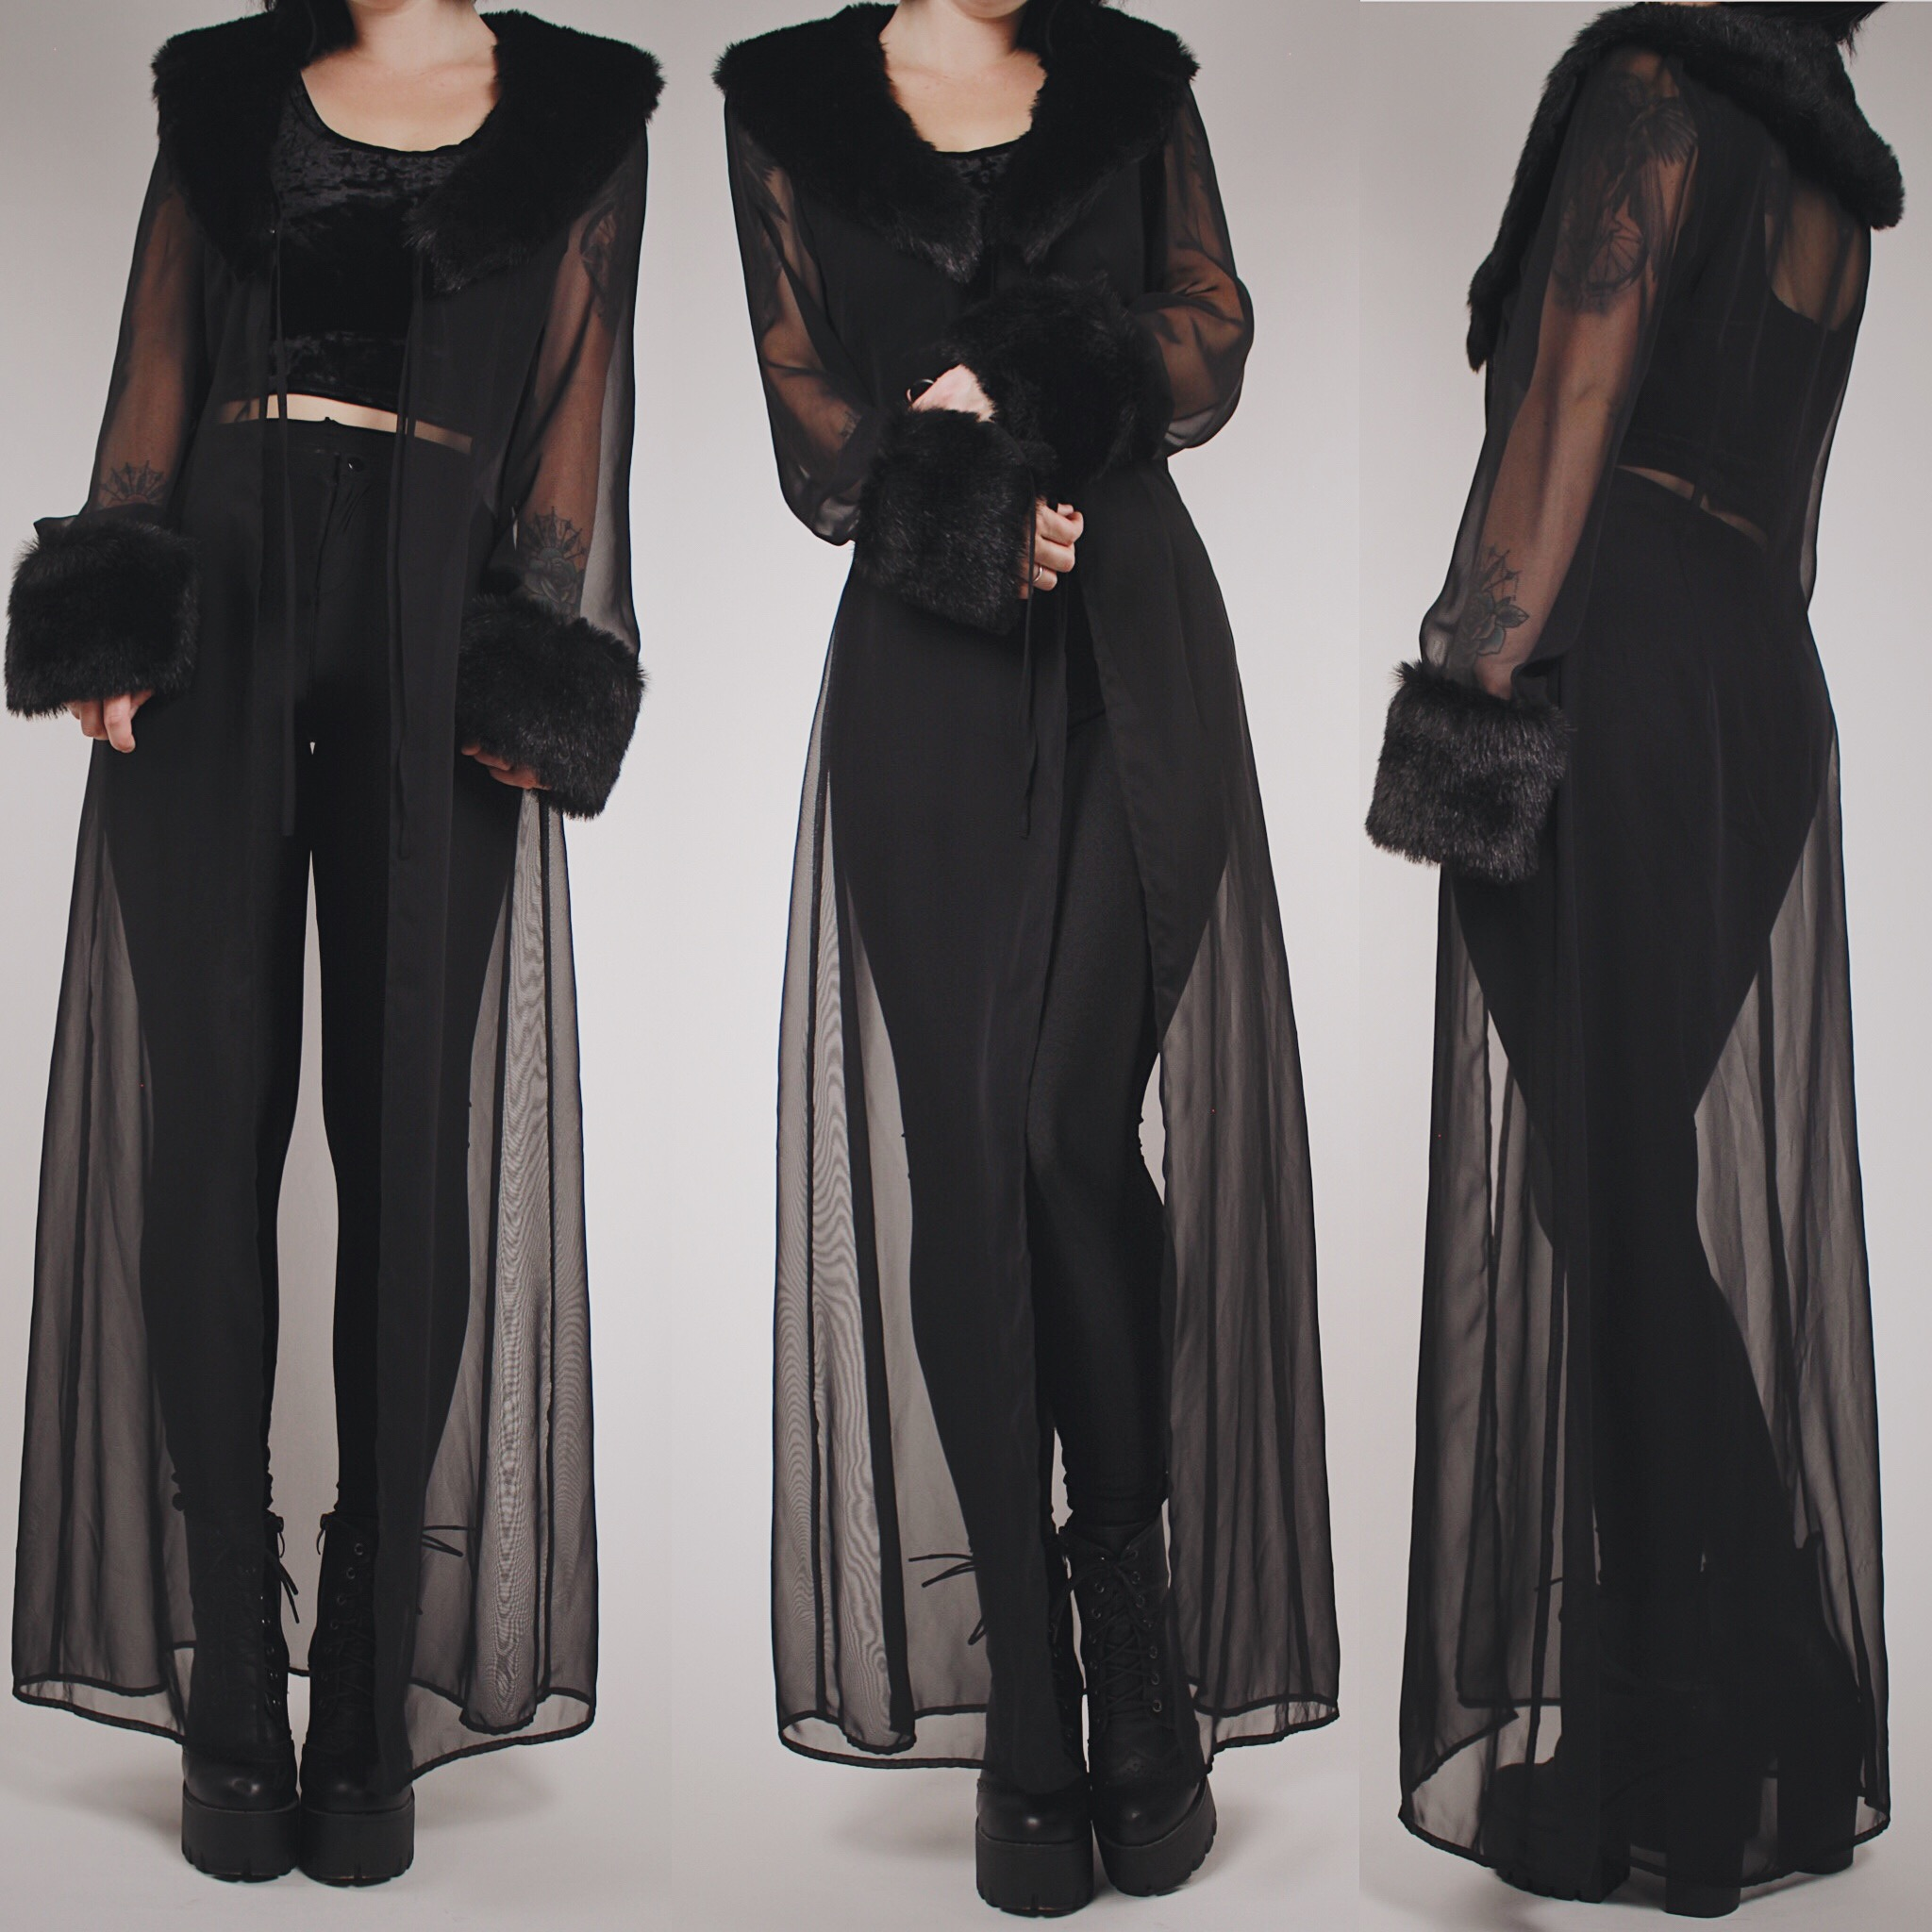 Claimed At Vamps420 Vintage 90s Black Sheer Dressing Gown With